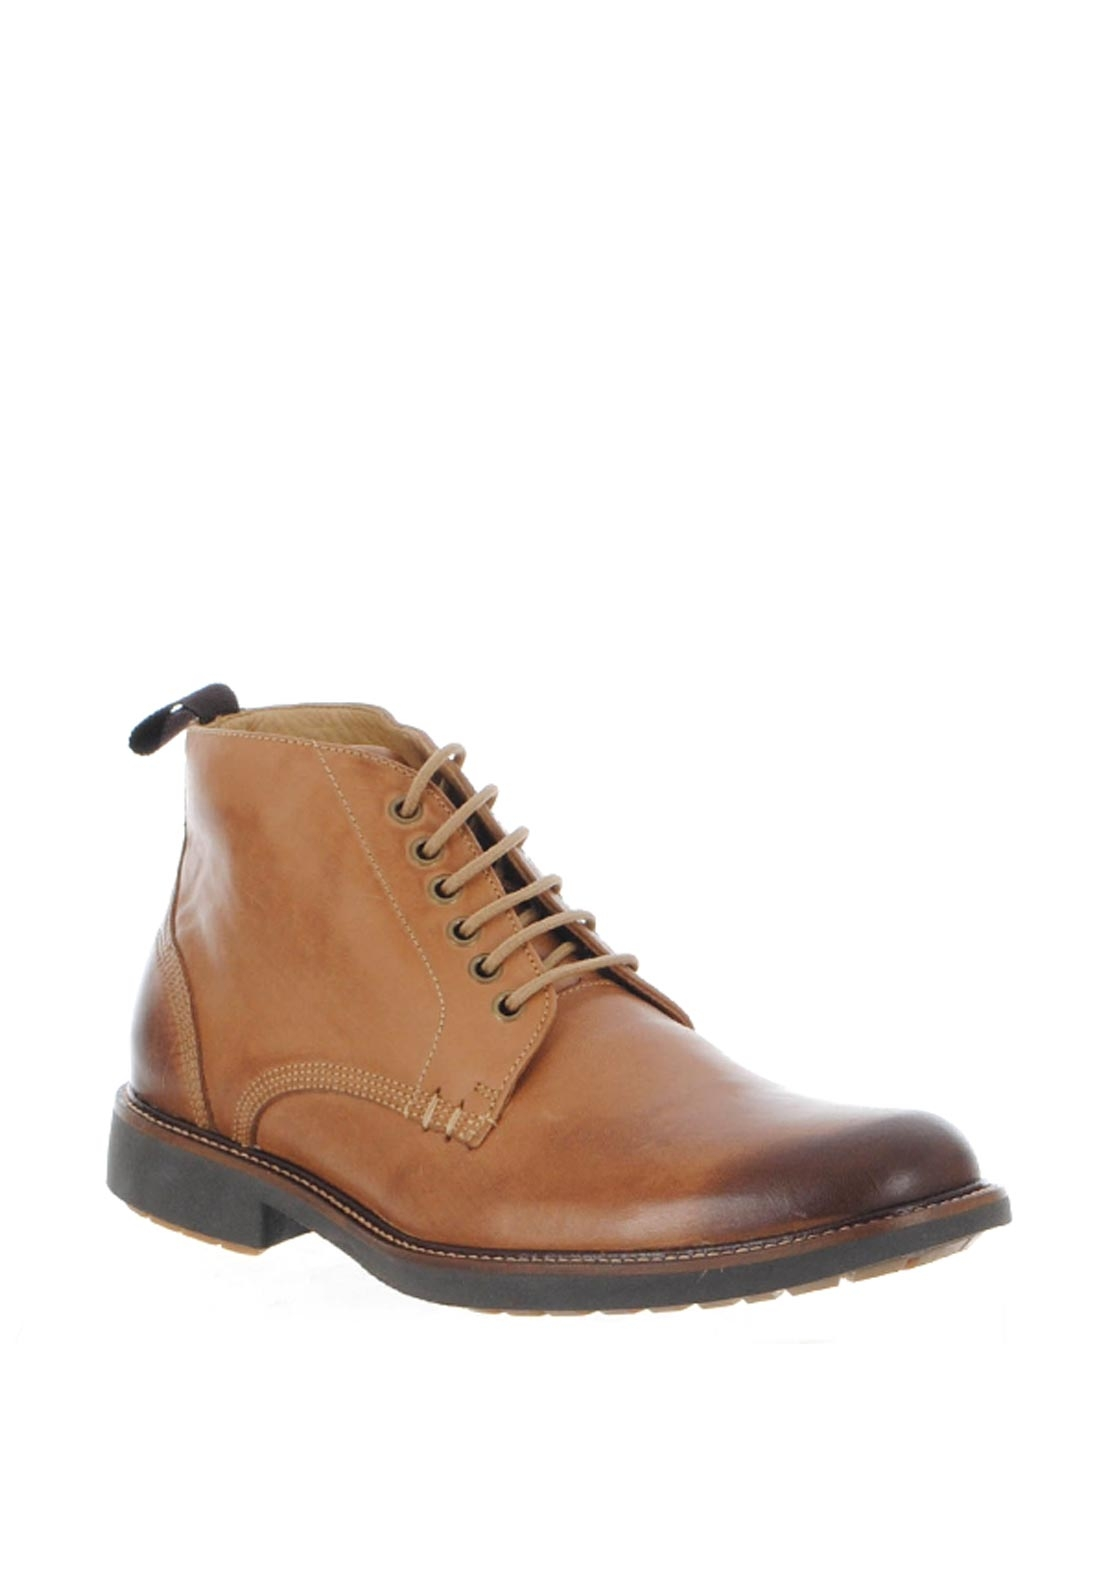 Anatomic & Co Pedras Lace Up Boots, Brown